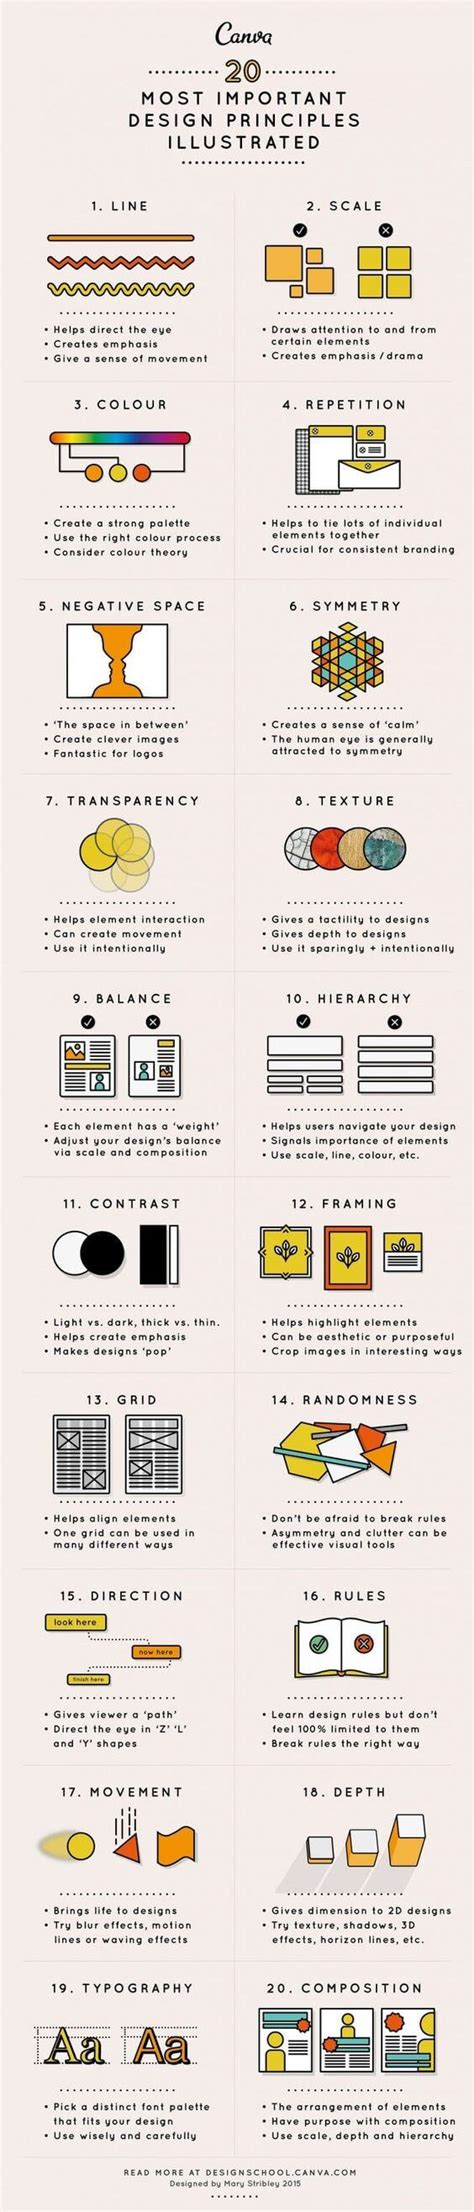 instagram design principles design elements and principles of canva infographic